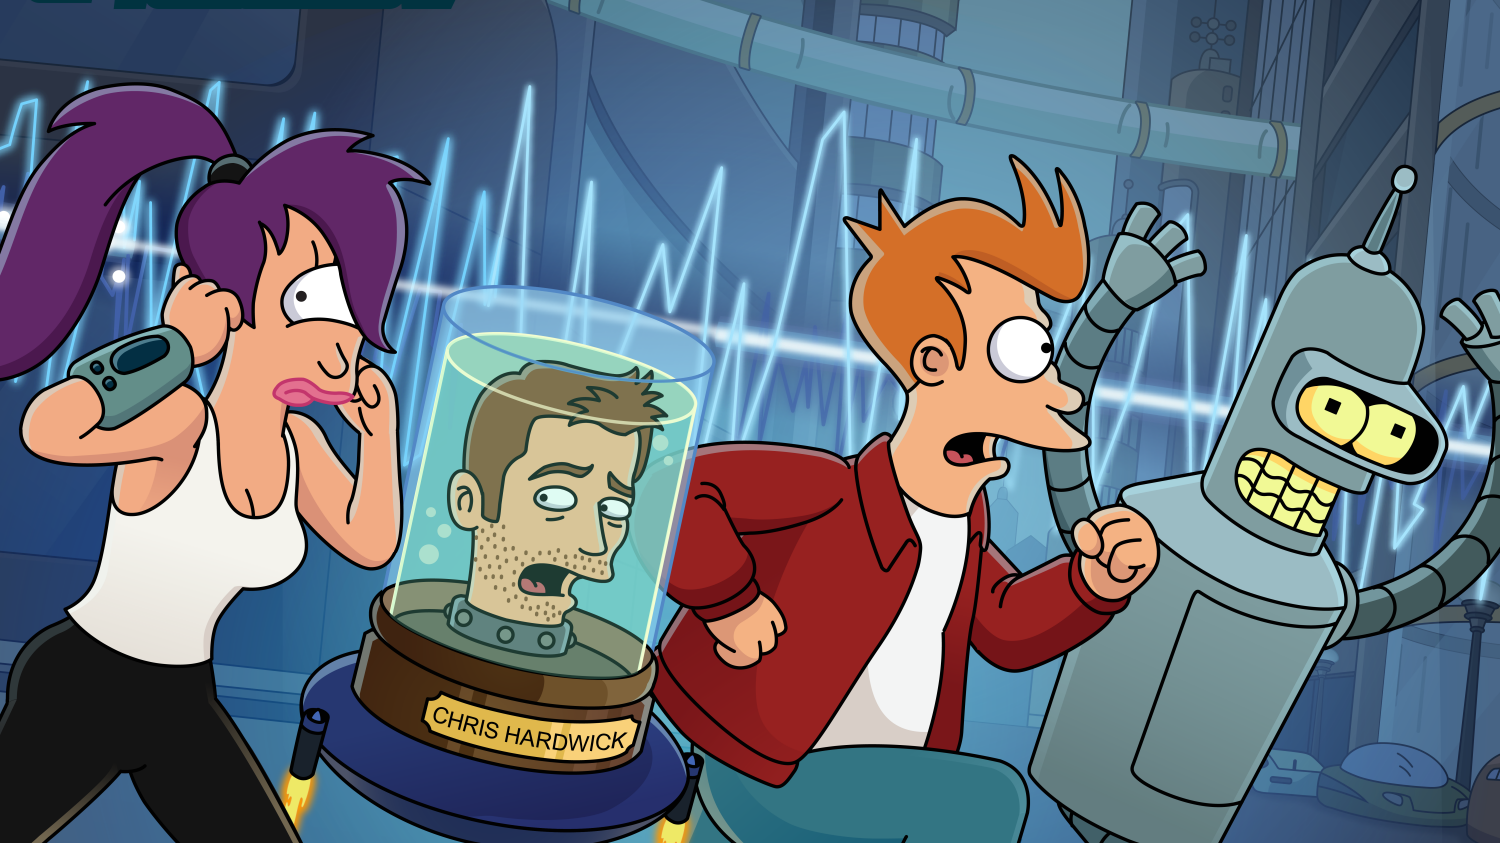 The Futurama Podcast Was Way Too Much Podcast, Not Nearly Enough Futurama